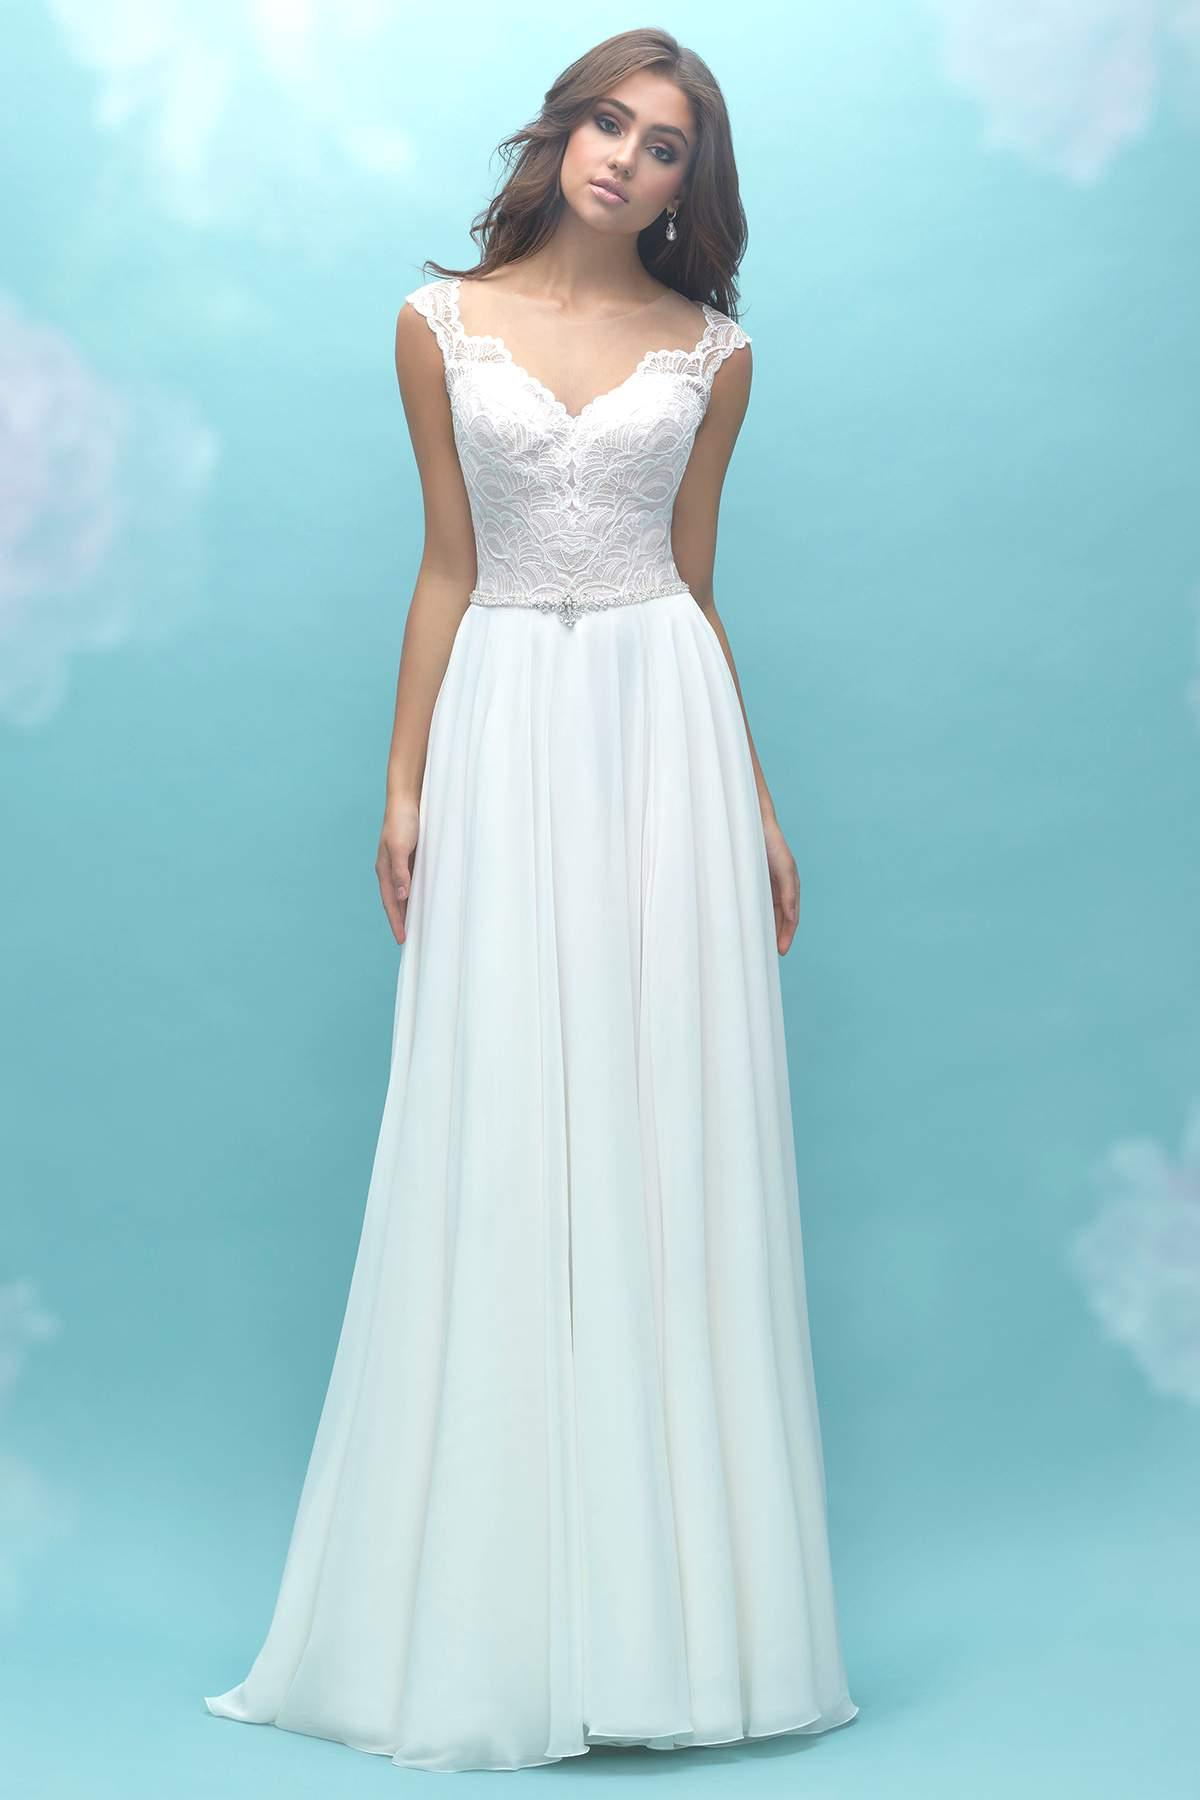 9c1d103a029 Style 9467 by Allure Bridals - Find Your Dream Dress